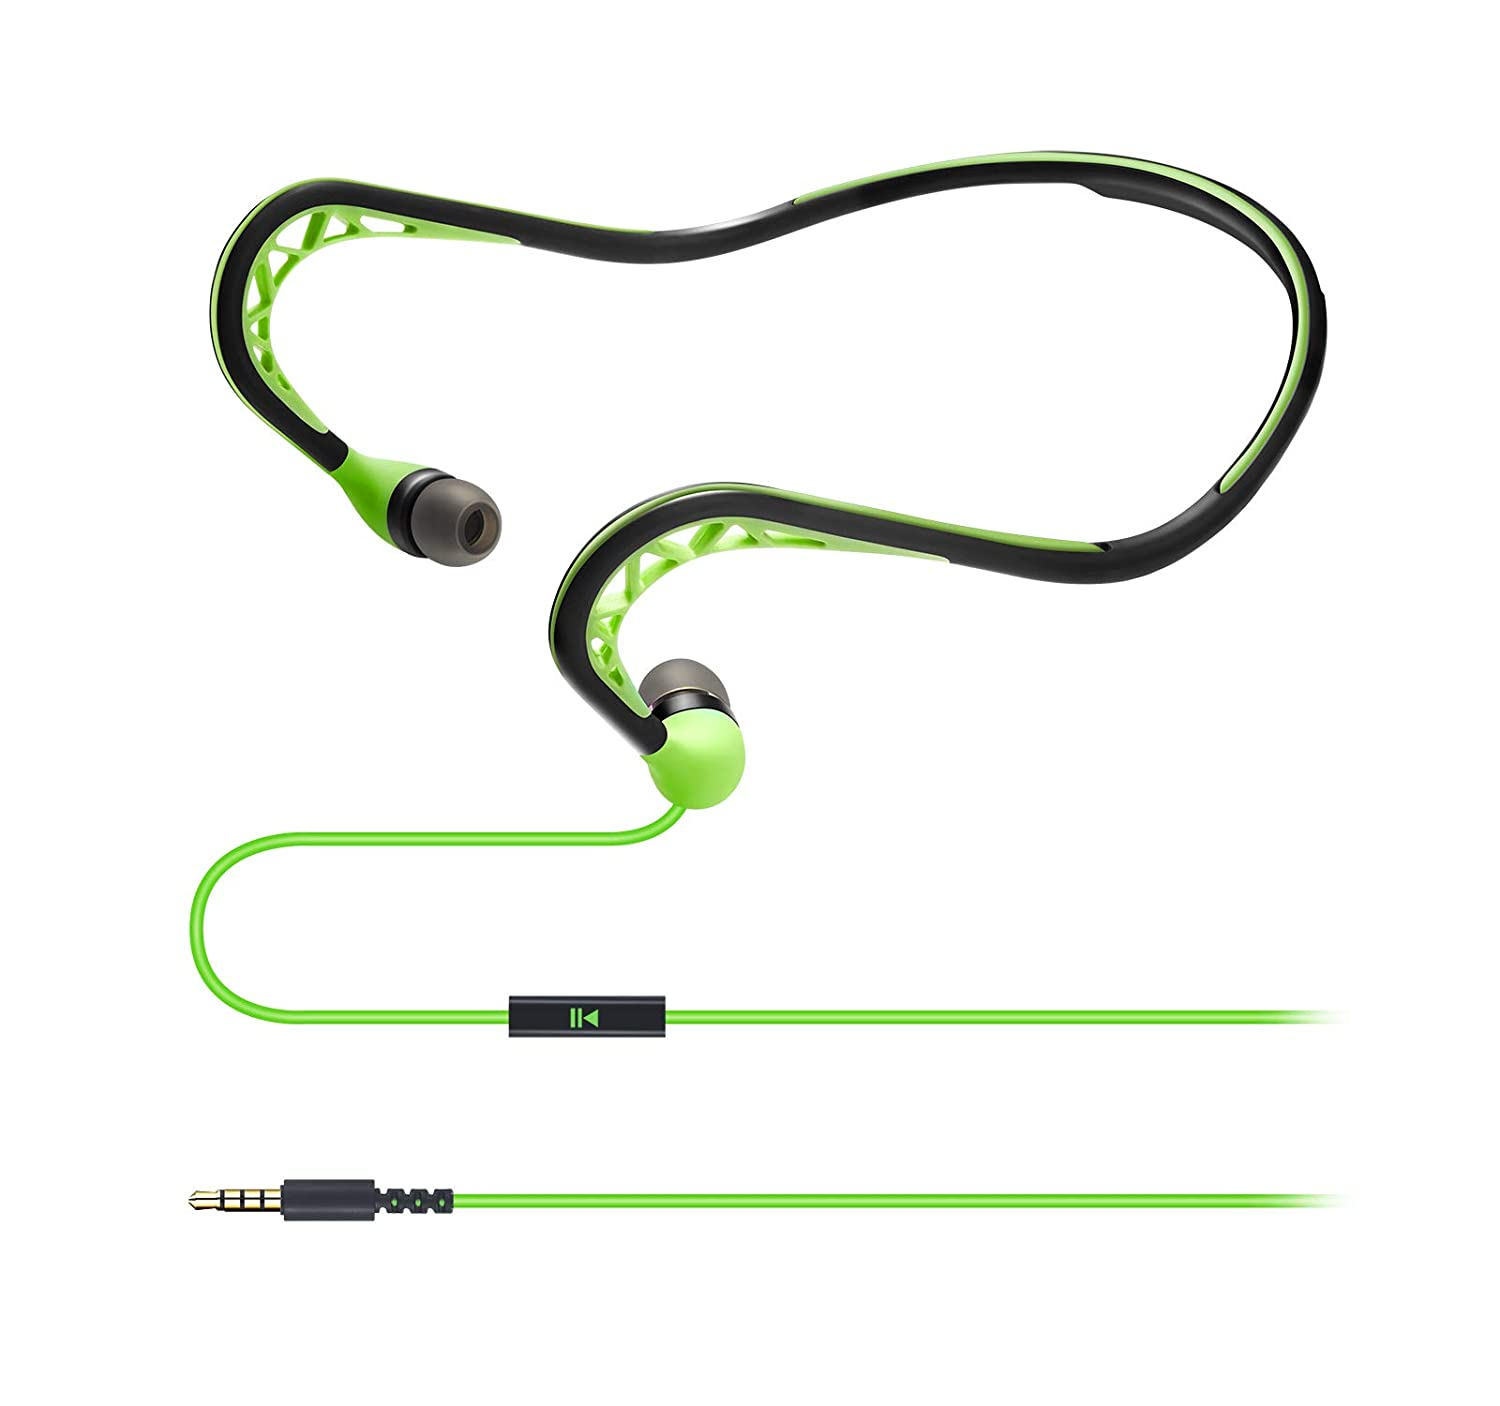 Wired Sport Running Neckband Headphones with Mic, in-Ear Stereo Workout Earphones Designed for 3.5mm Jack Plug Cell Phone Headset,Green